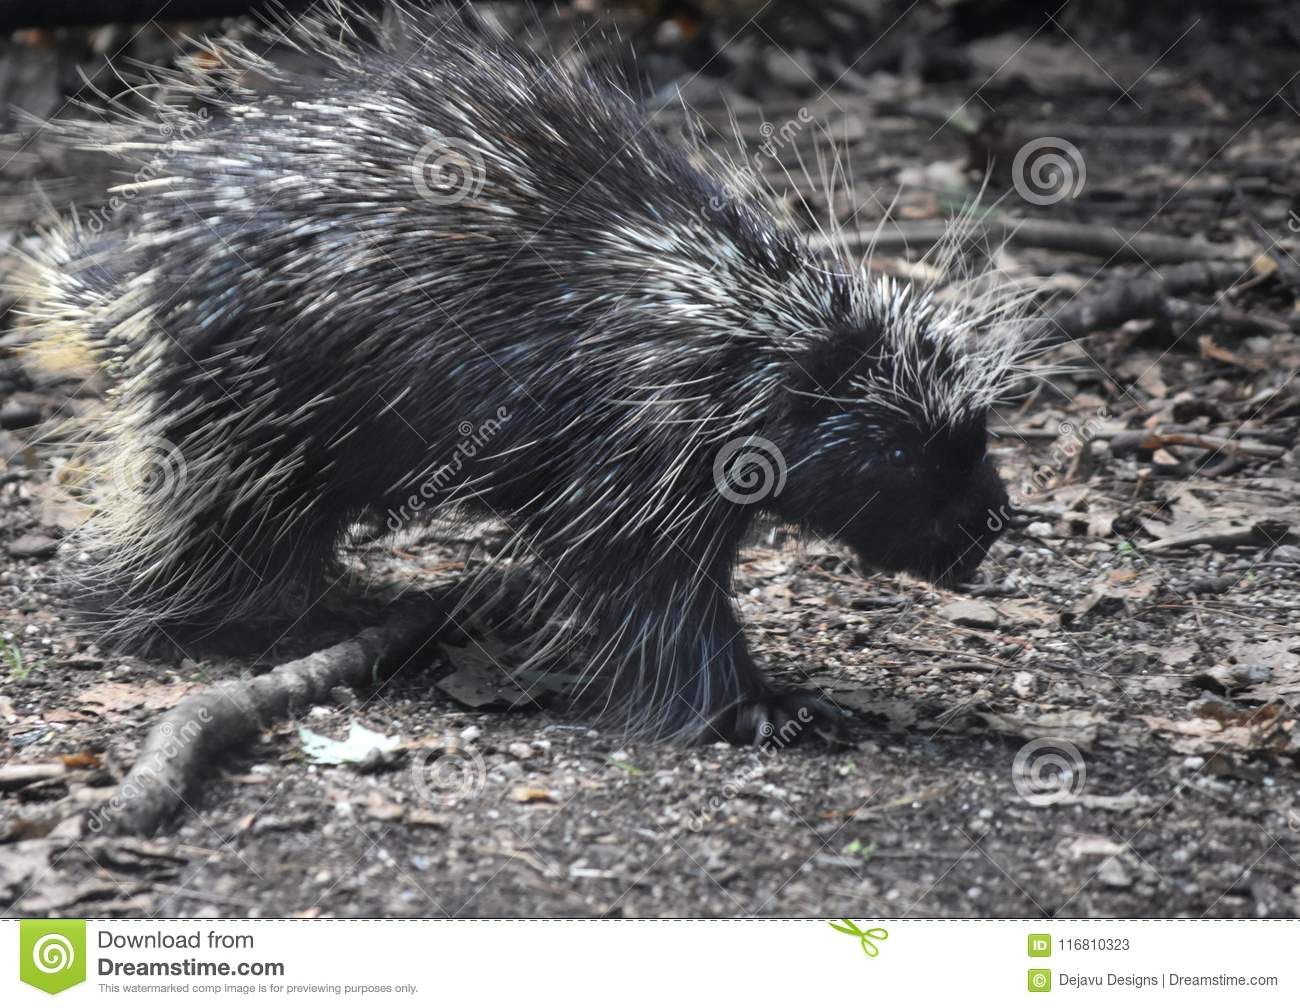 Cute black and white porcupine walking over a stick